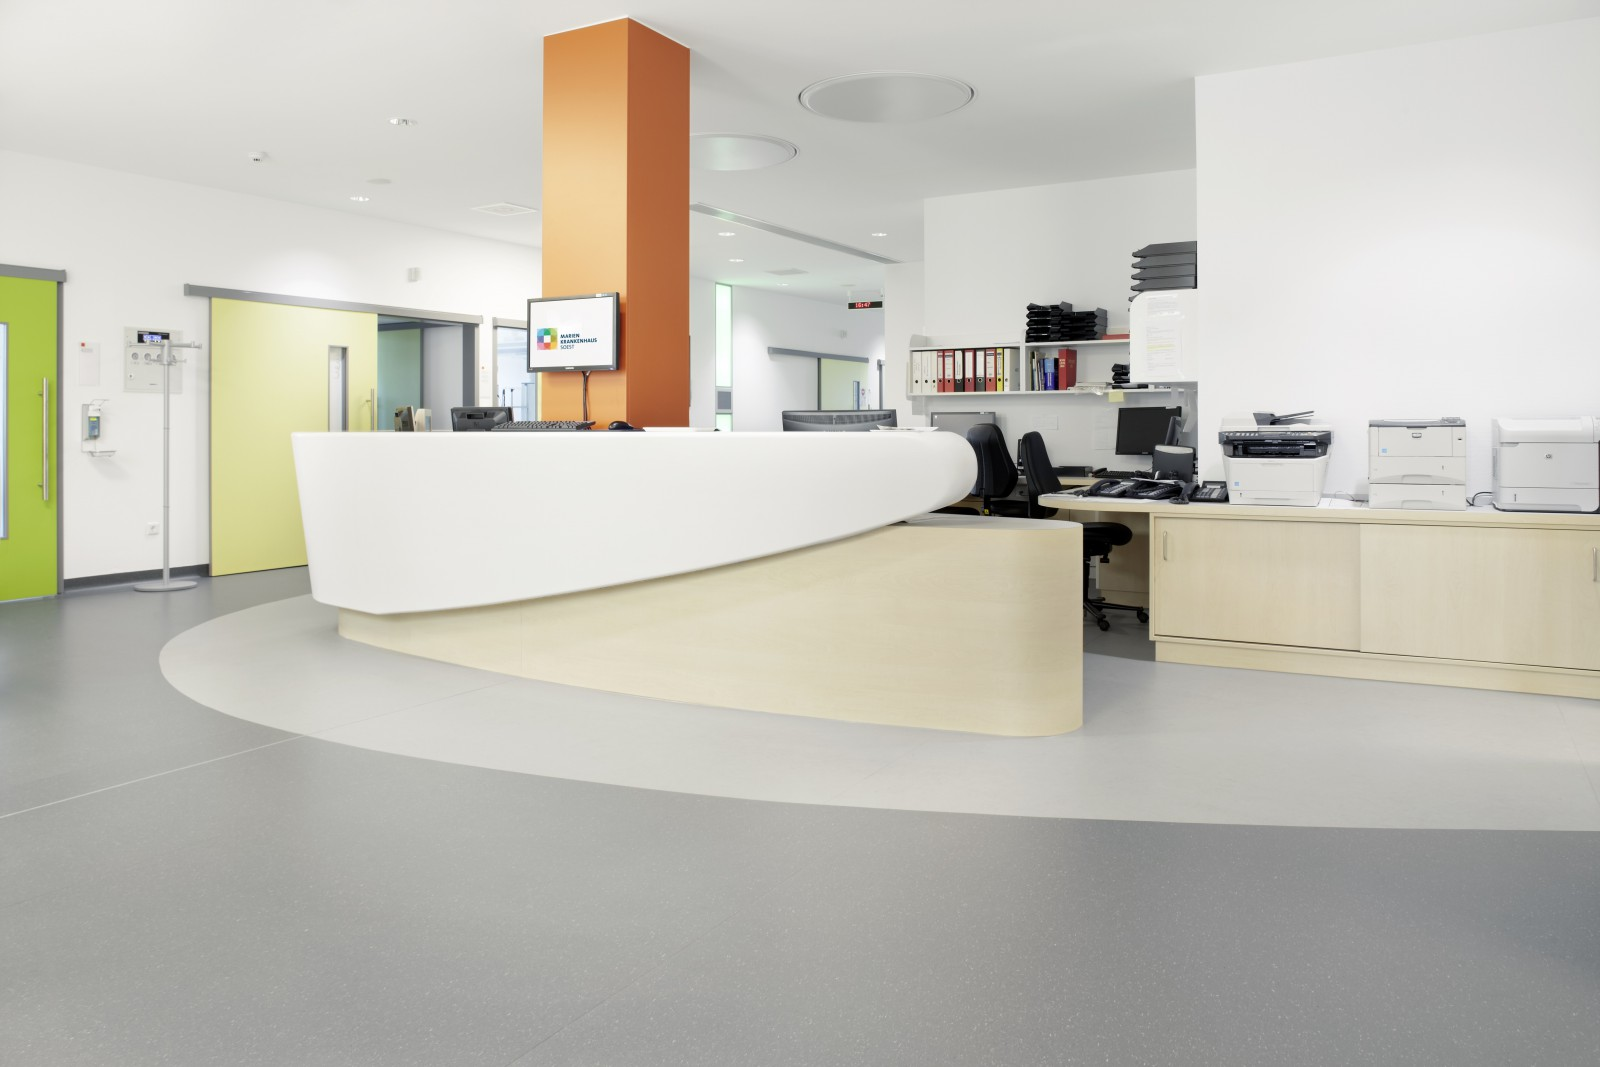 Theke ITS, Quelle: Forbo Flooring (www.forbo-flooring.de)